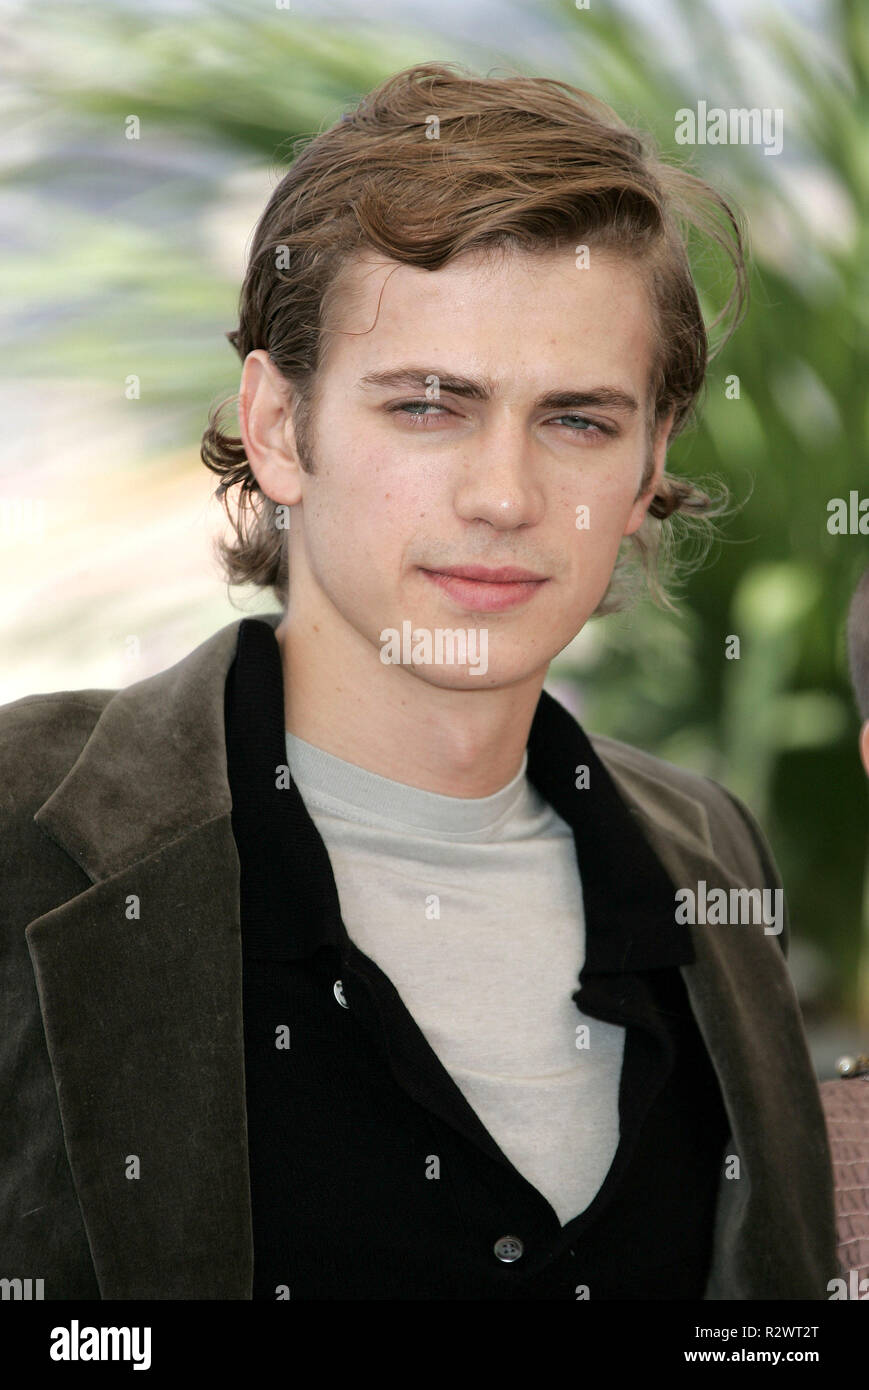 Hayden Christensen Cannes Film Festival 2005 Cannes France 16 May 2005 Stock Photo Alamy